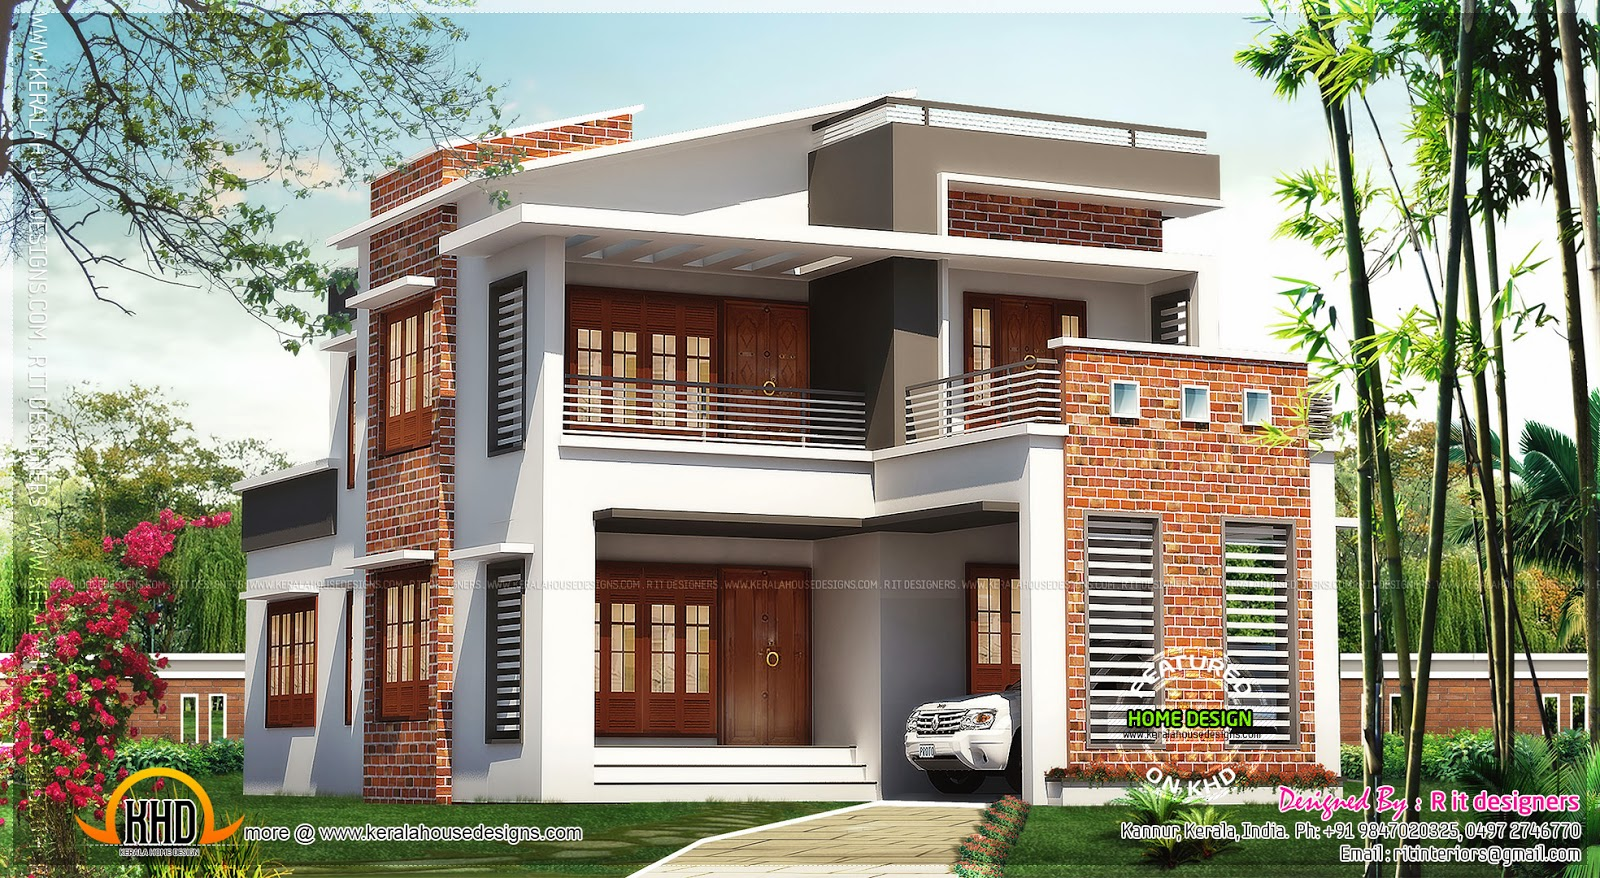 brick mix house exterior design kerala home design and floor plans. Black Bedroom Furniture Sets. Home Design Ideas